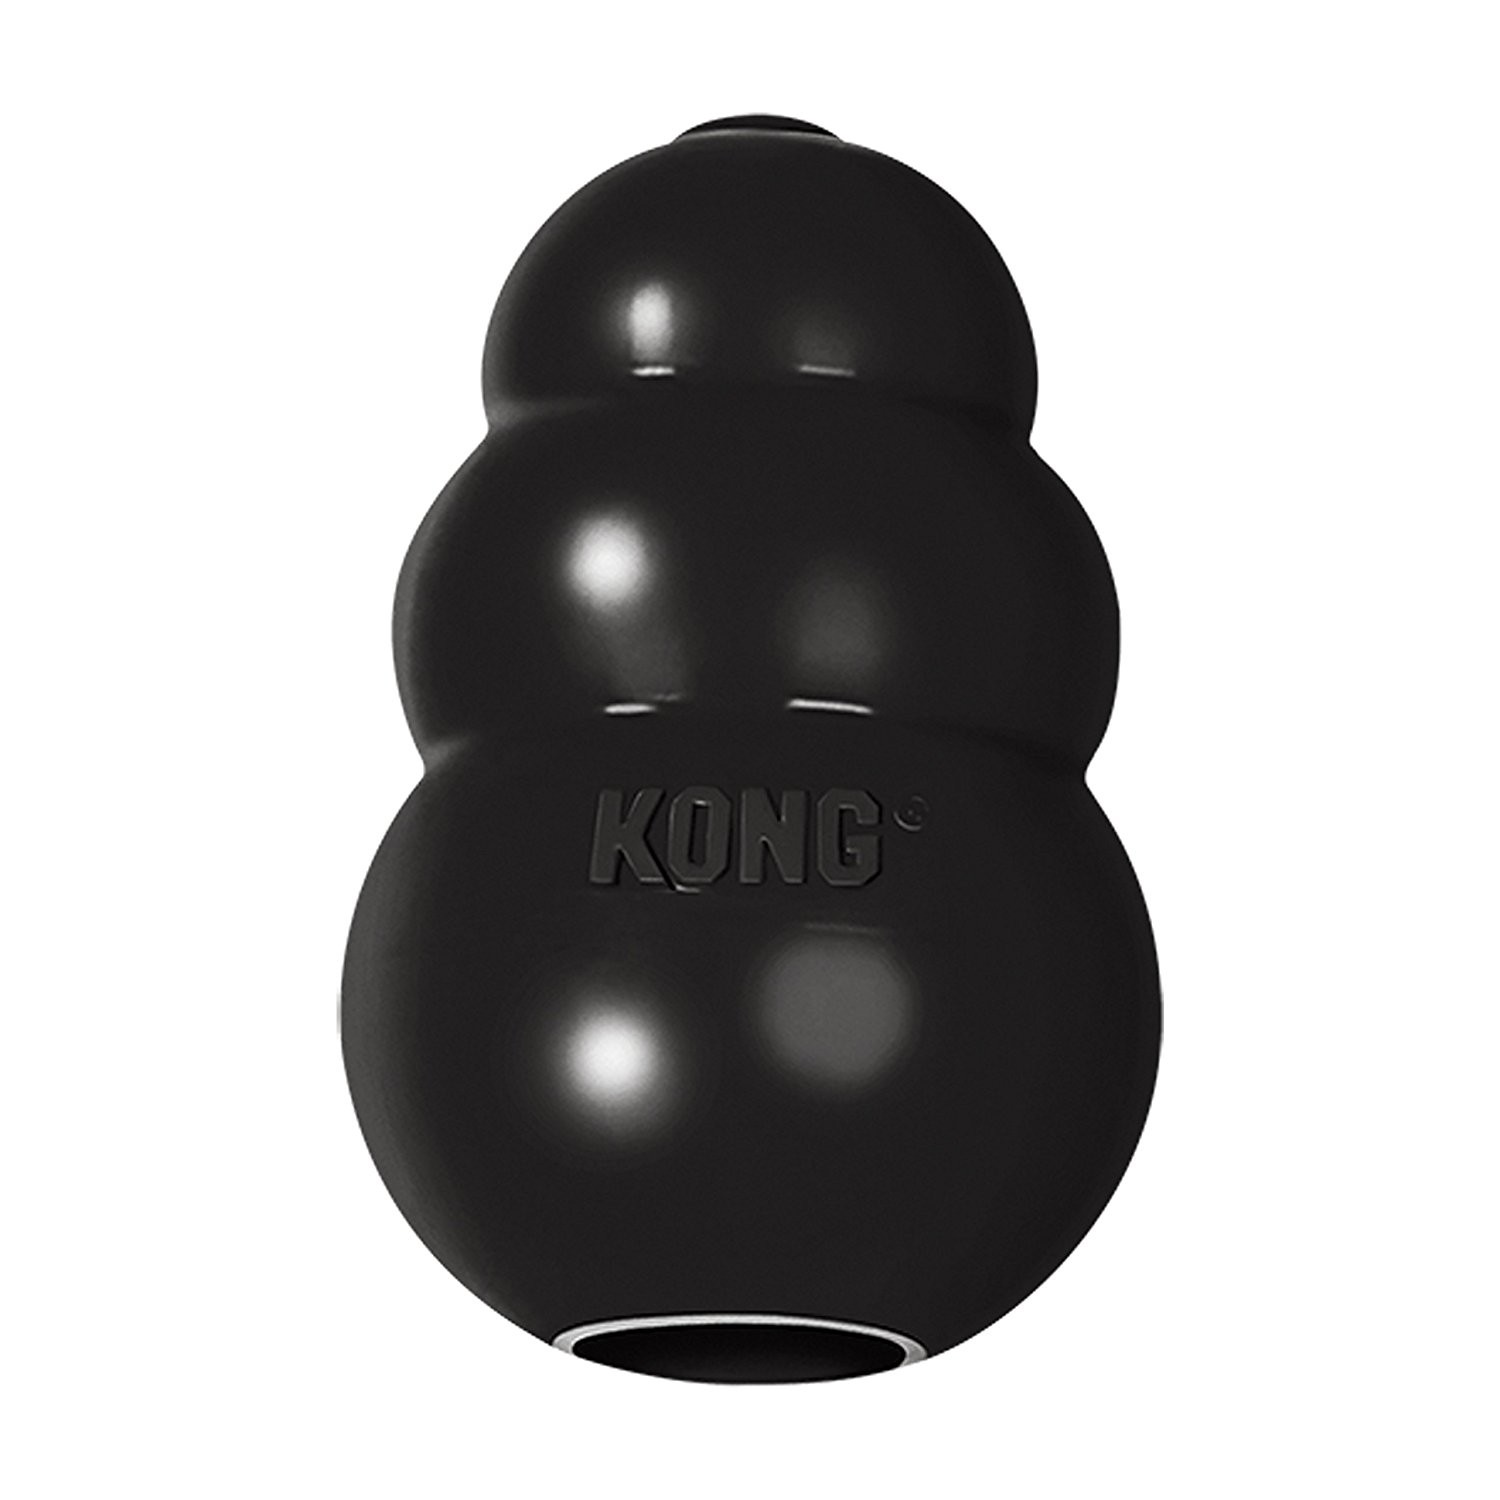 KONG Extreme Dog Toy, Black